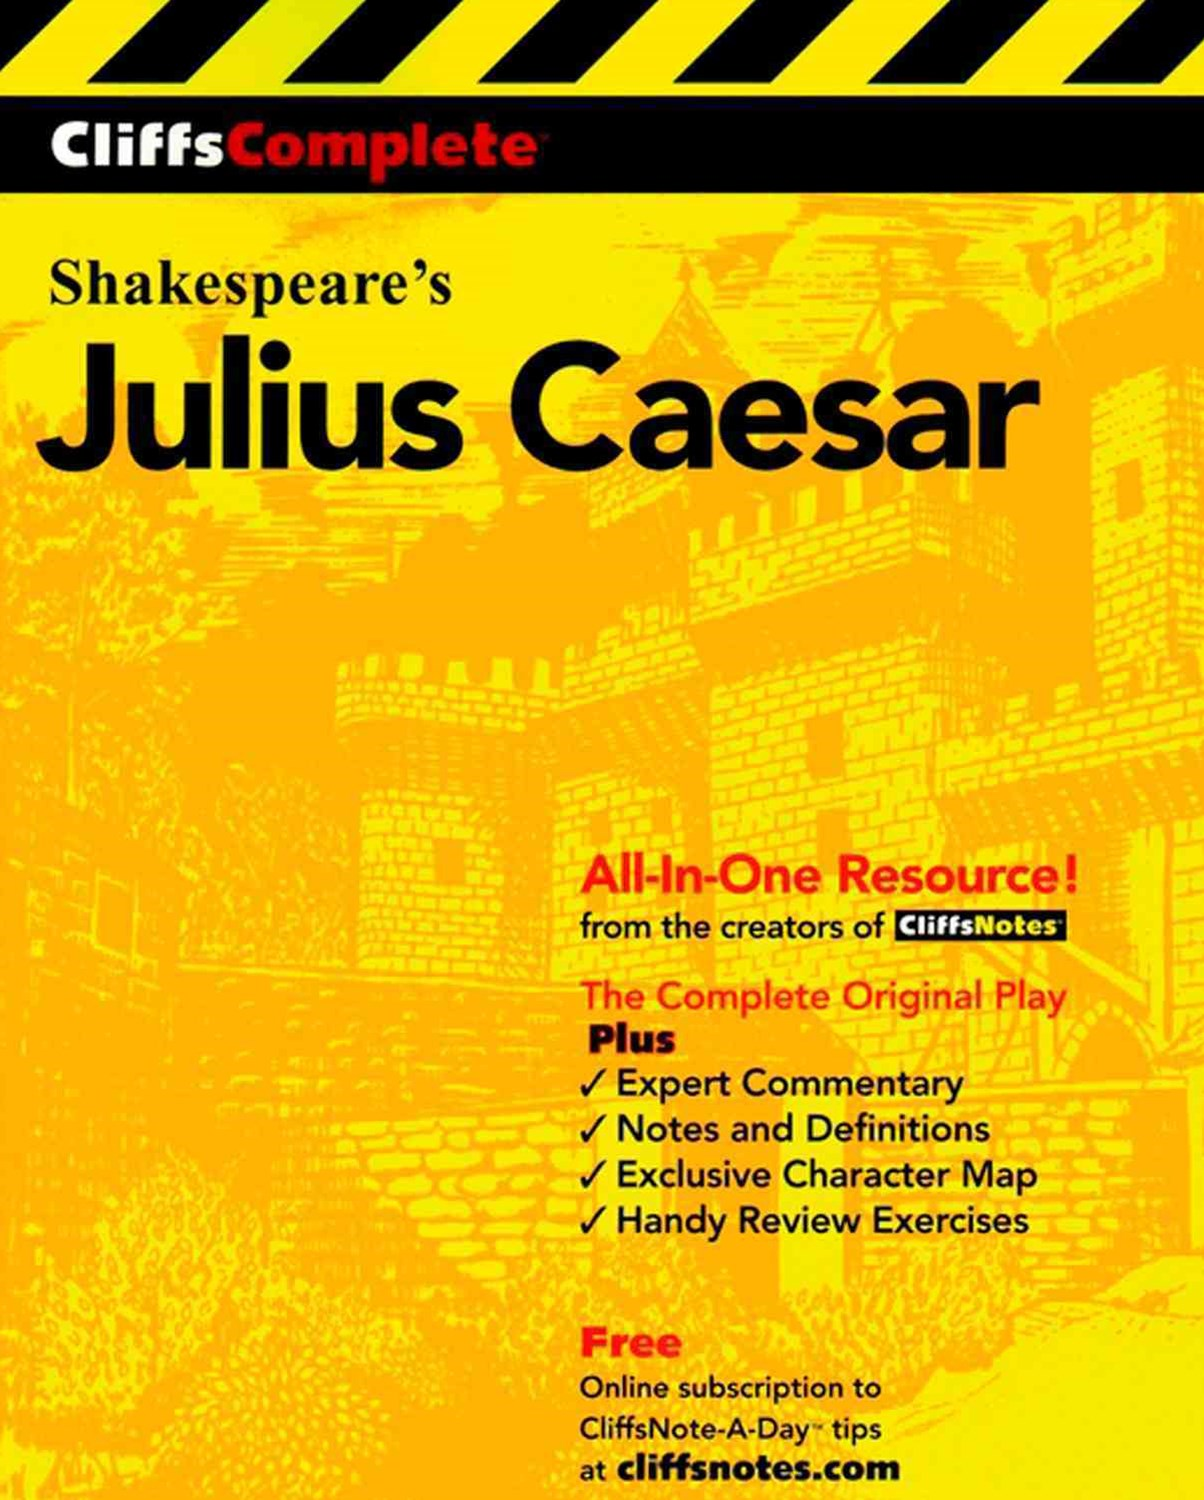 CliffsComplete Shakespeare's Julius Caesar